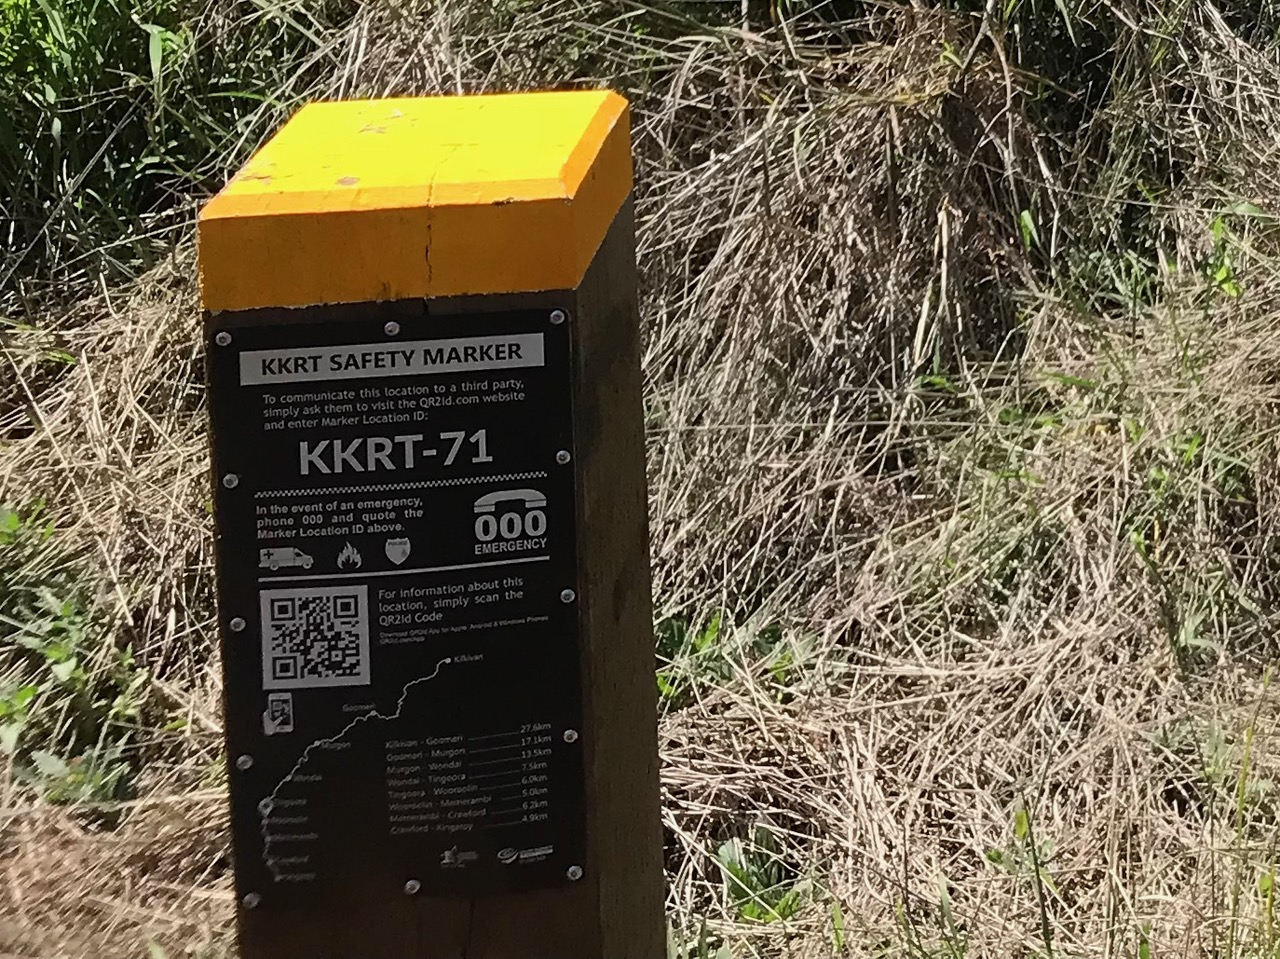 20181020 safety marker IMG_0448